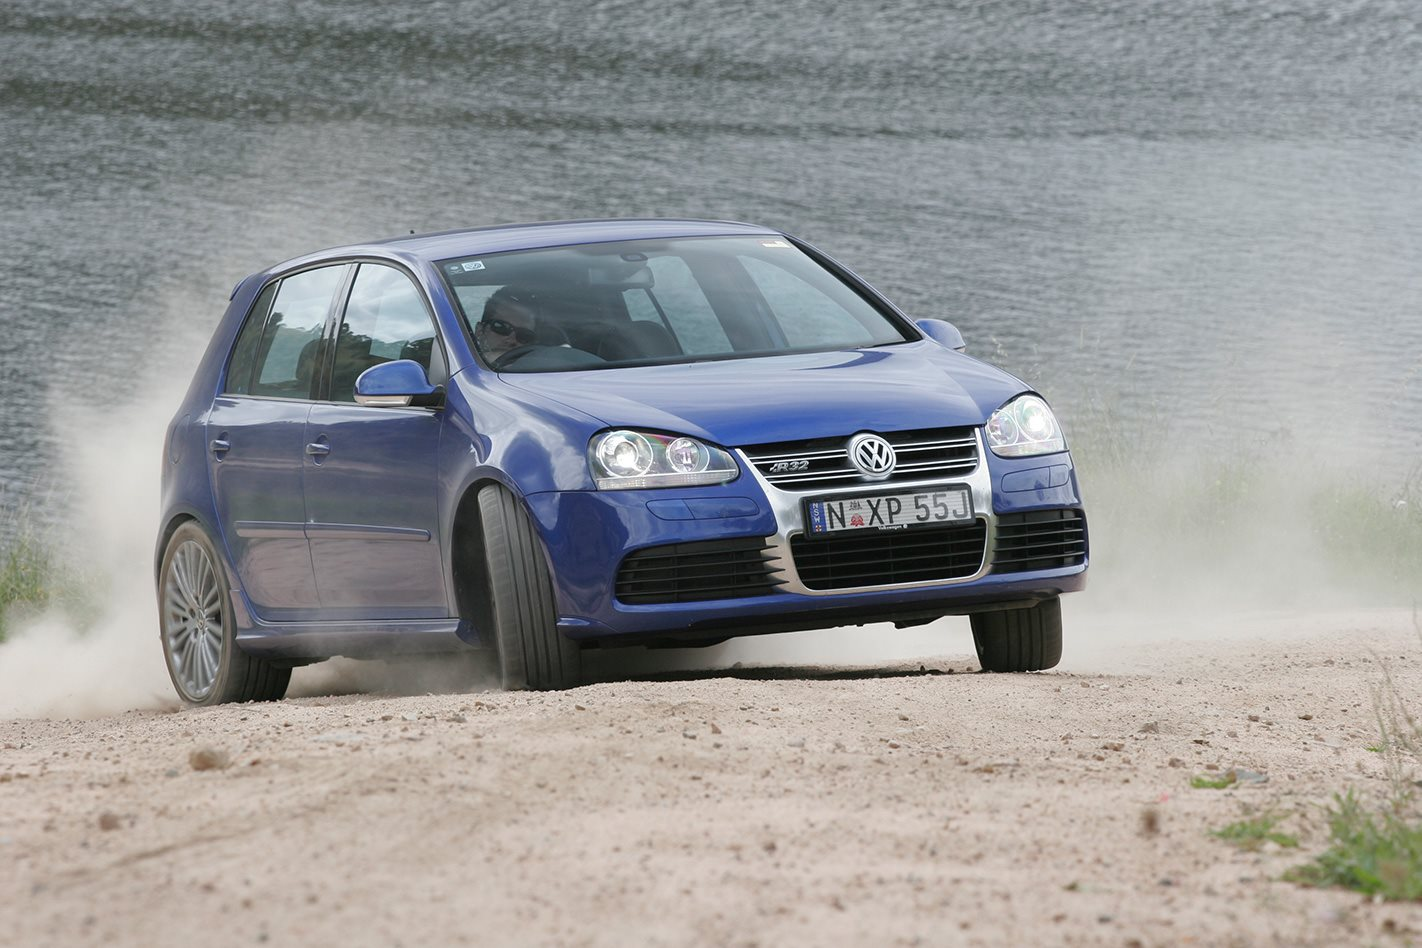 2008 Golf R32 drifting.jpg